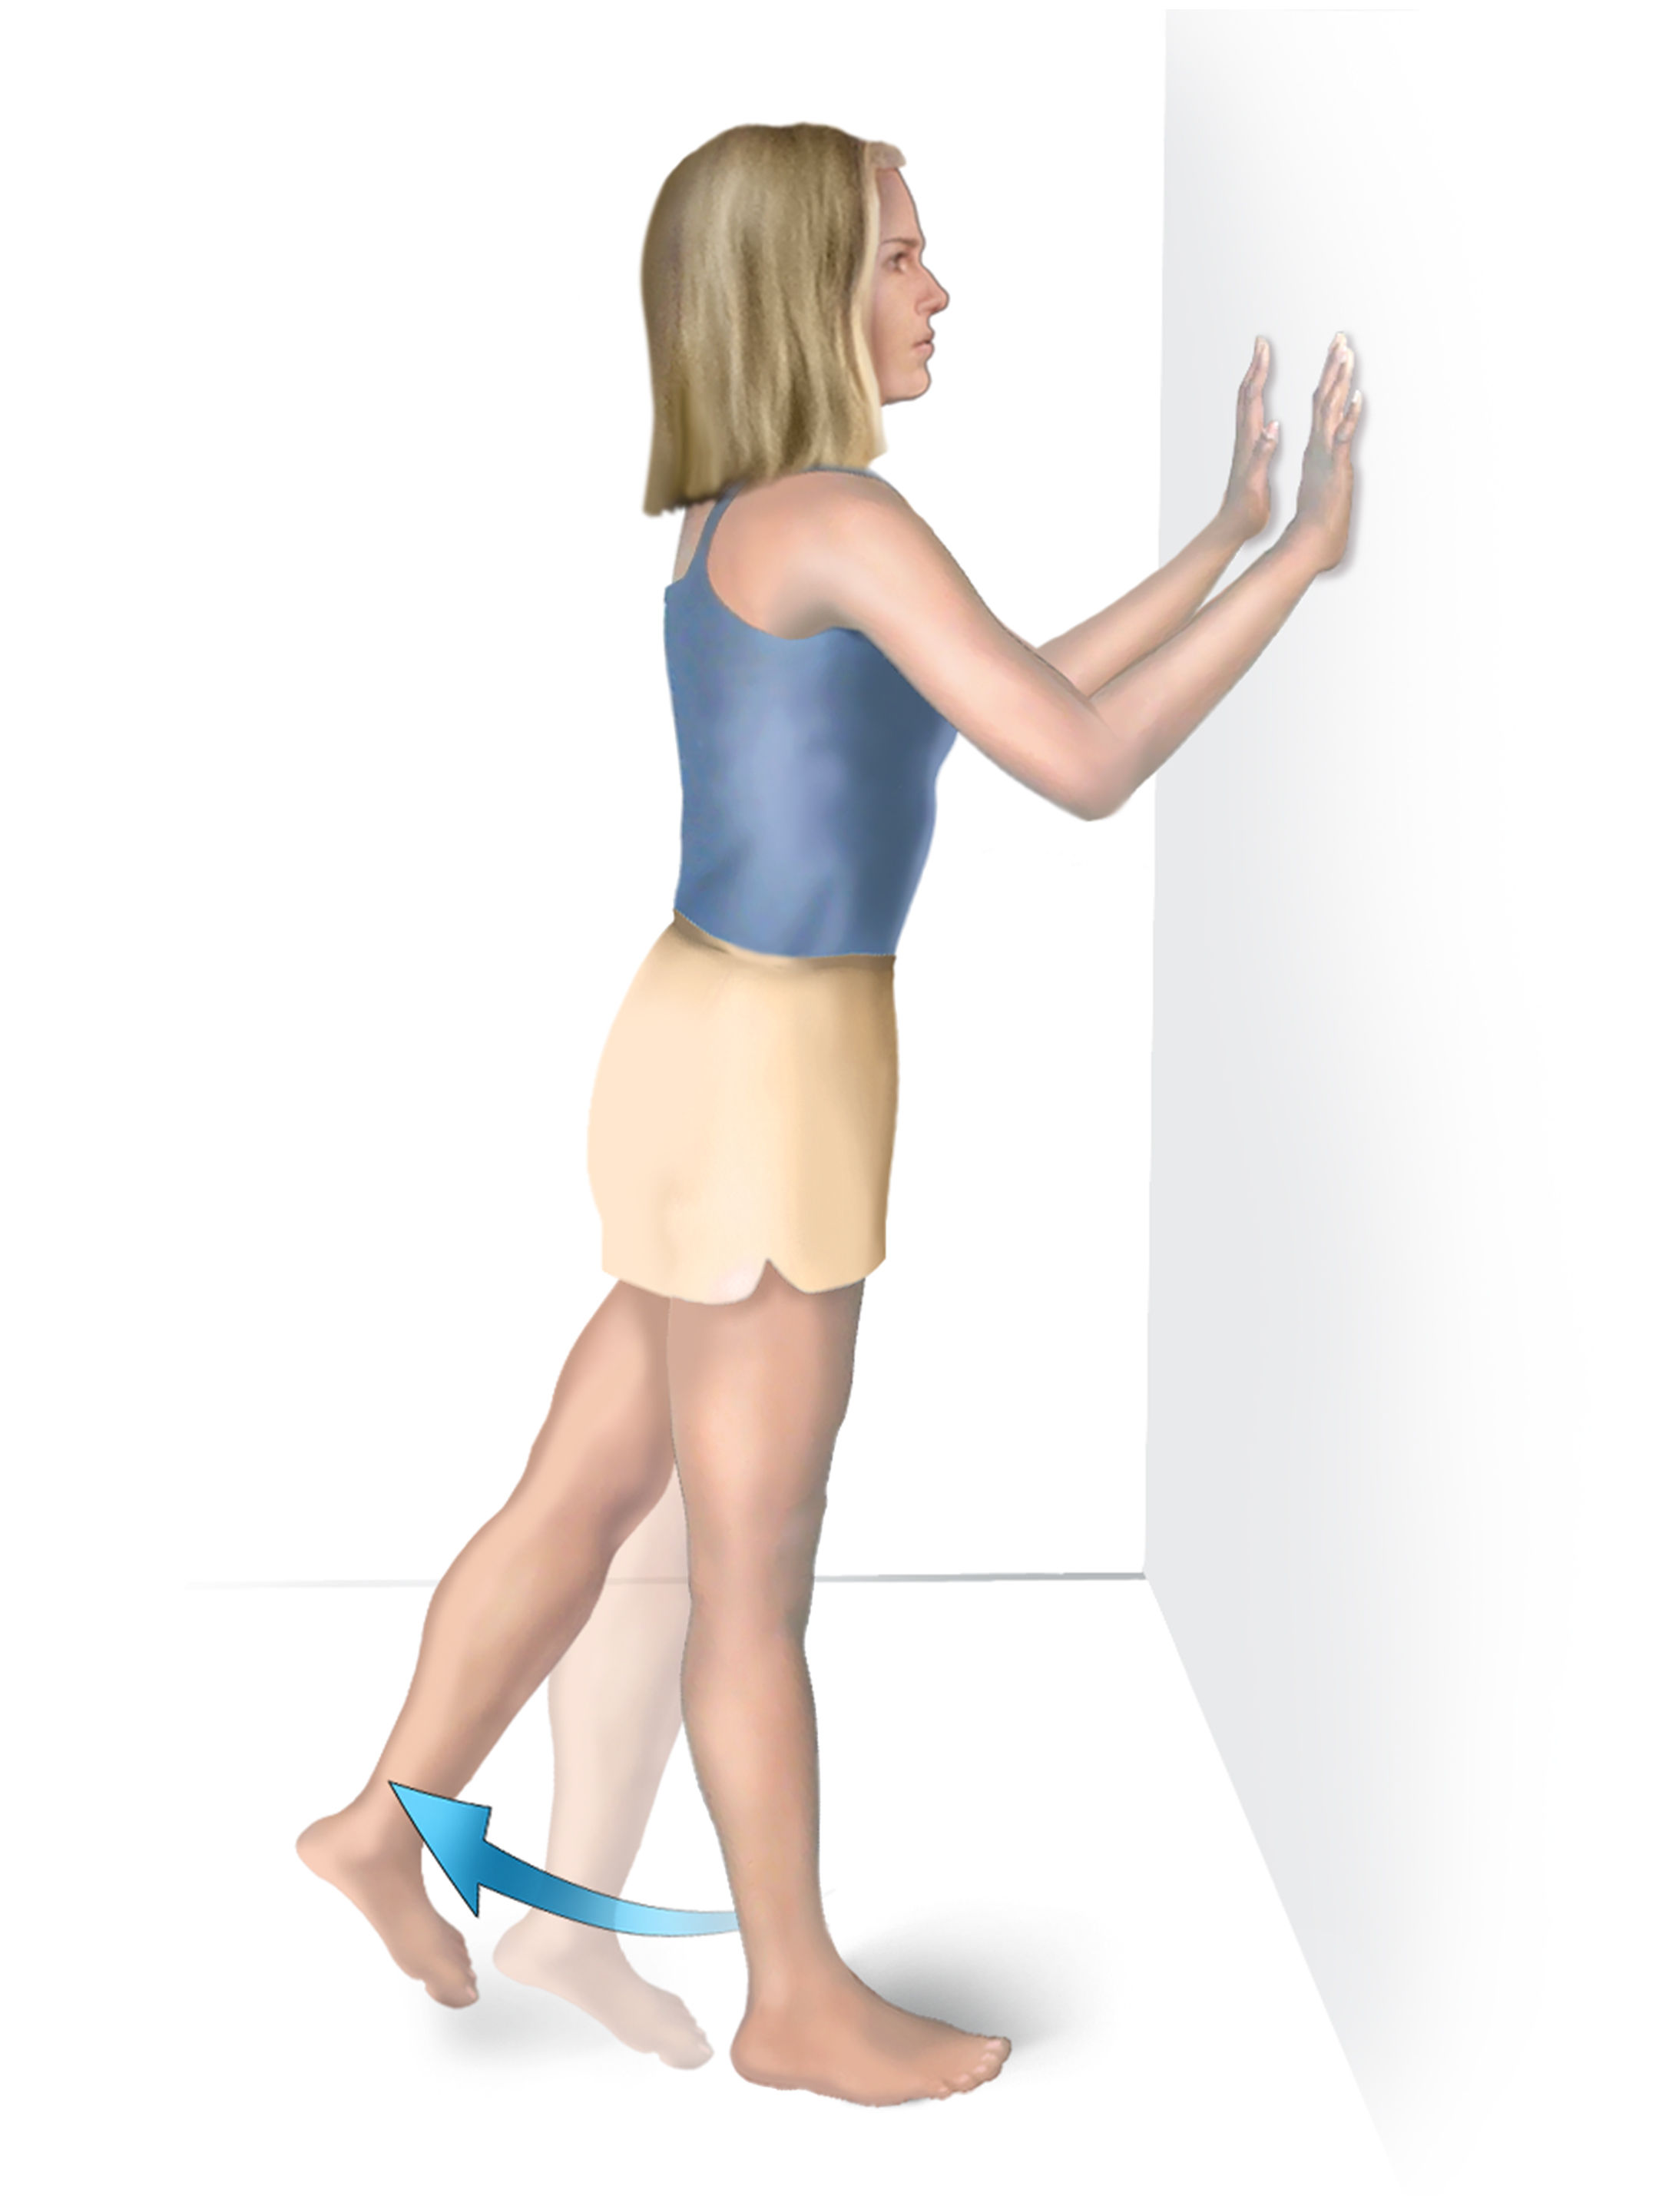 Figure stretching: standing with hands on wall lifting leg behind them